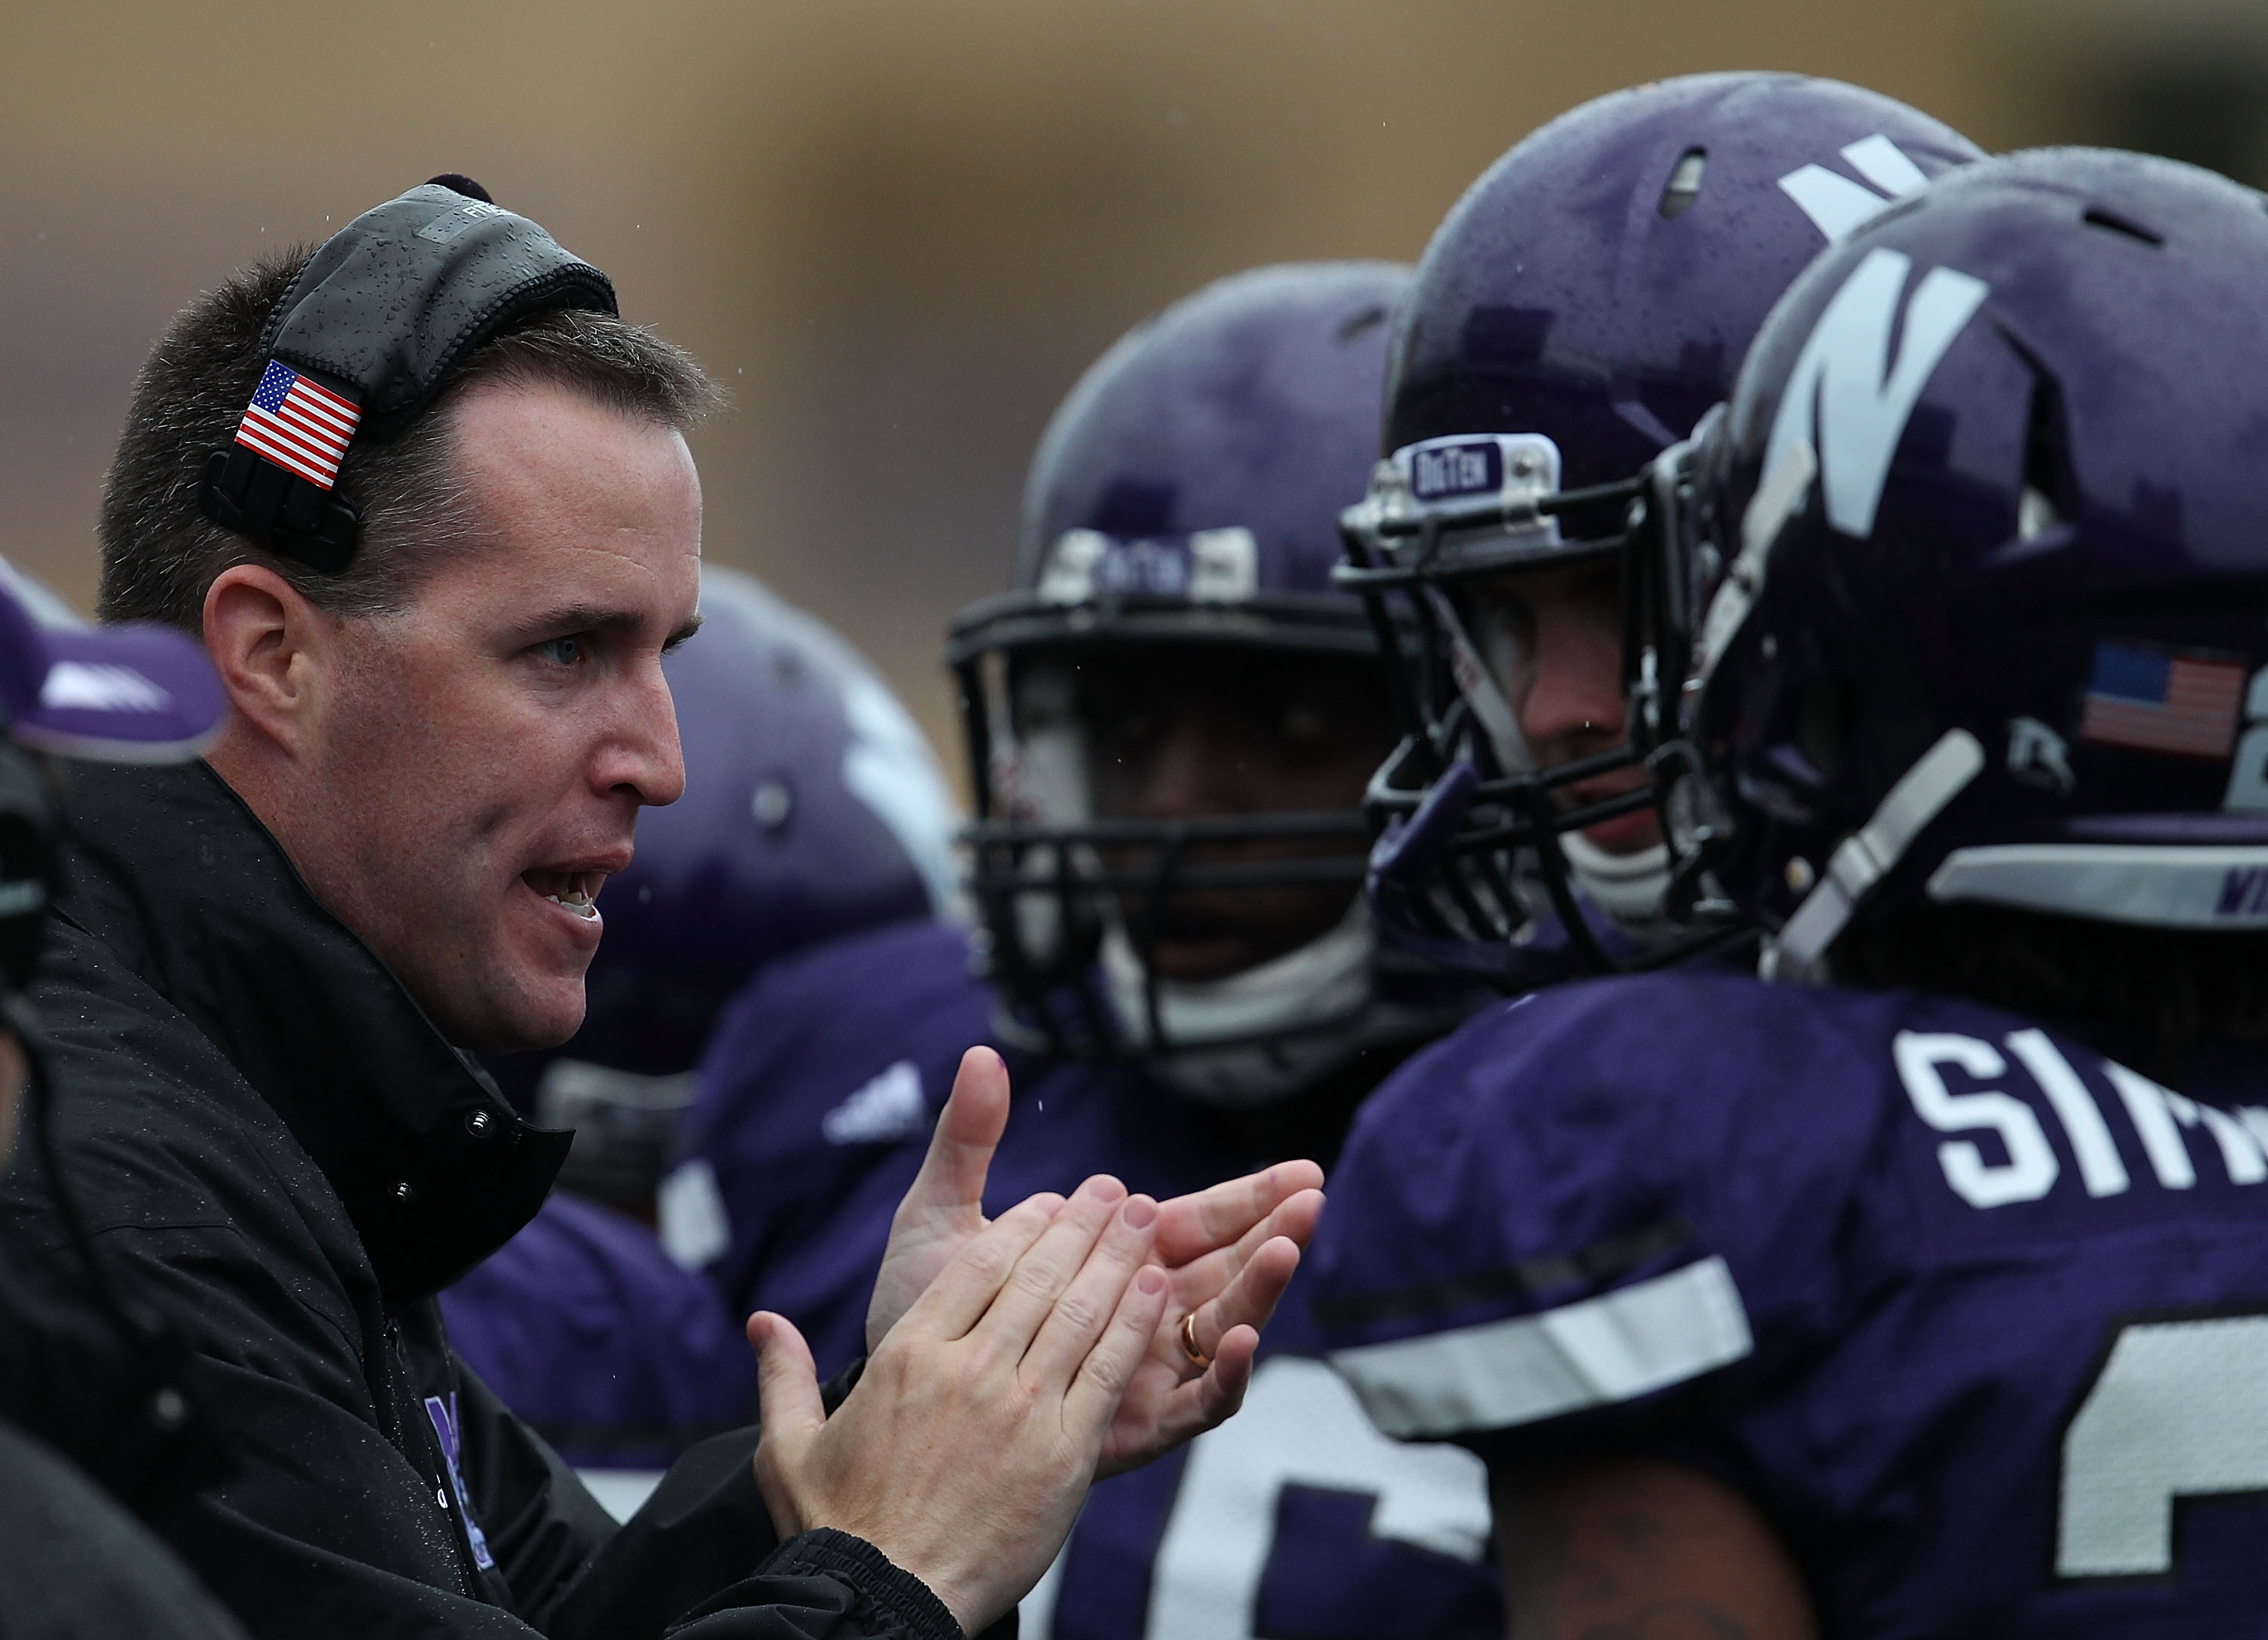 EVANSTON, IL - OCTOBER 23: Head coach Pat Fitzgerald of the Northwestern Wildcats encourages his team as they take on the Michigan State Spartans at Ryan Field on October 23, 2010 in Evanston, Illinois. Michigan State defeated Northwestern 35-27. (Photo b